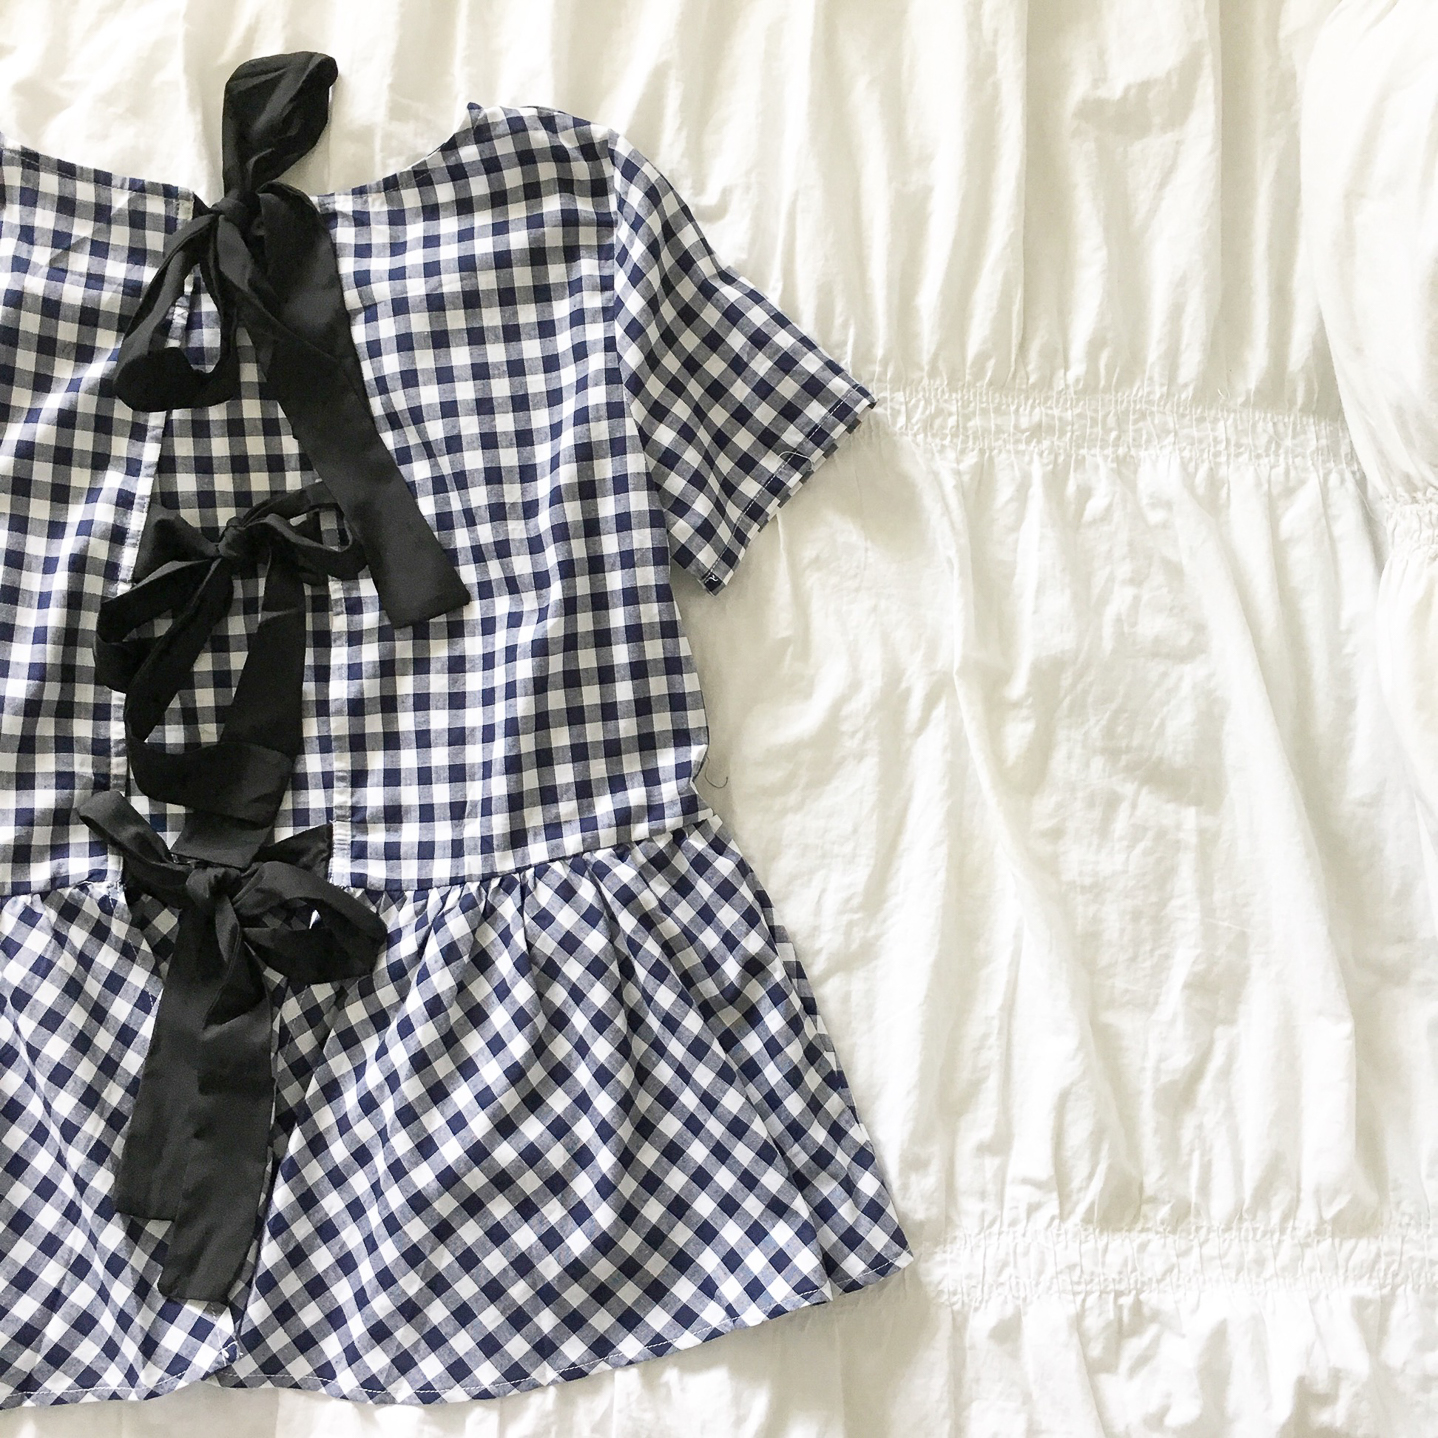 my favorite outfits for summer, Instagram, life lately, bow back peplum gingham top